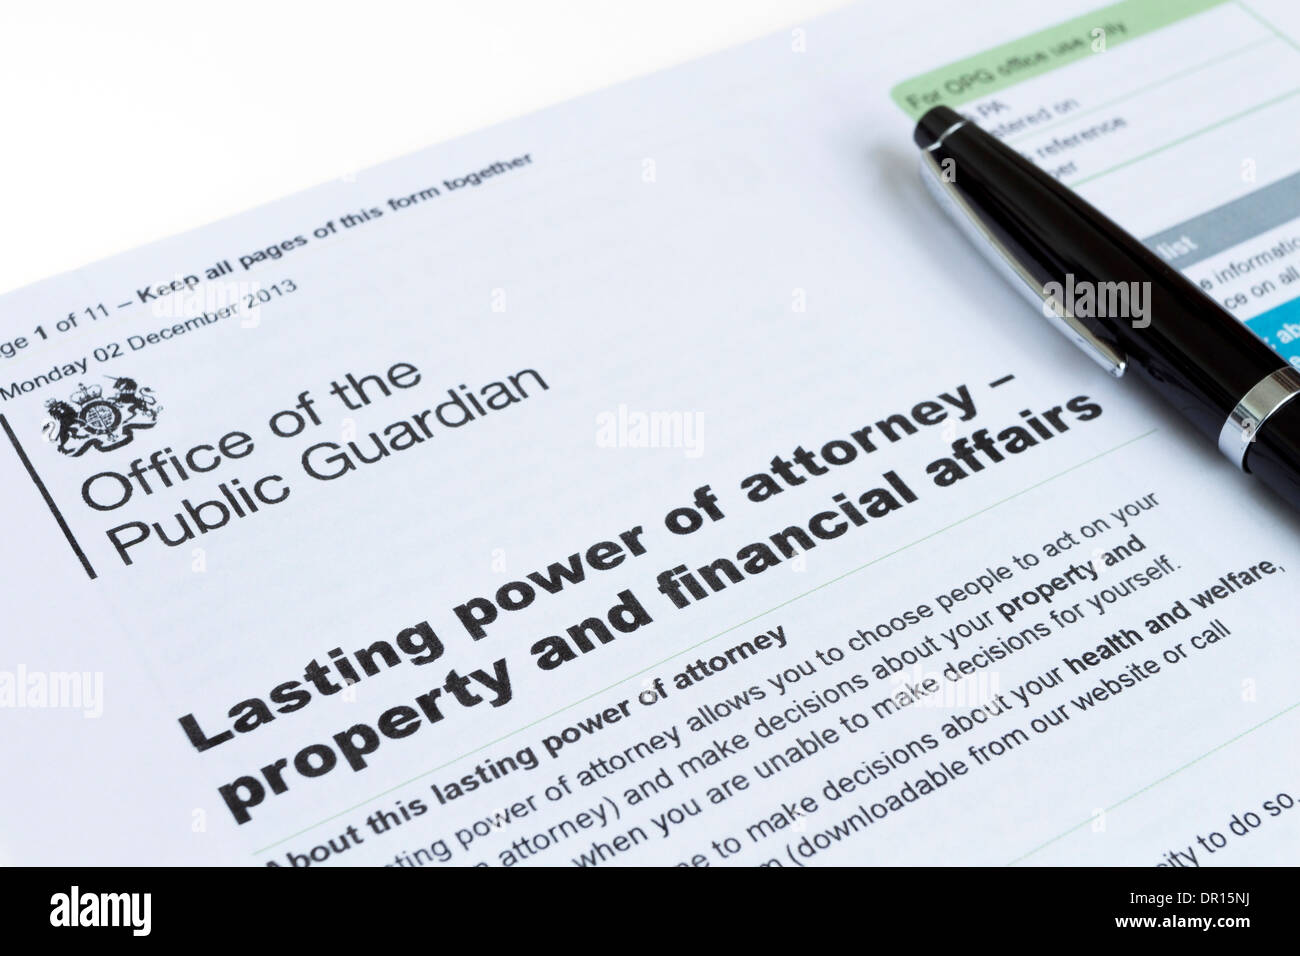 Lasting power of attorney property and financial affairs form from lasting power of attorney property and financial affairs form from the office of the public guardian uk solutioingenieria Image collections